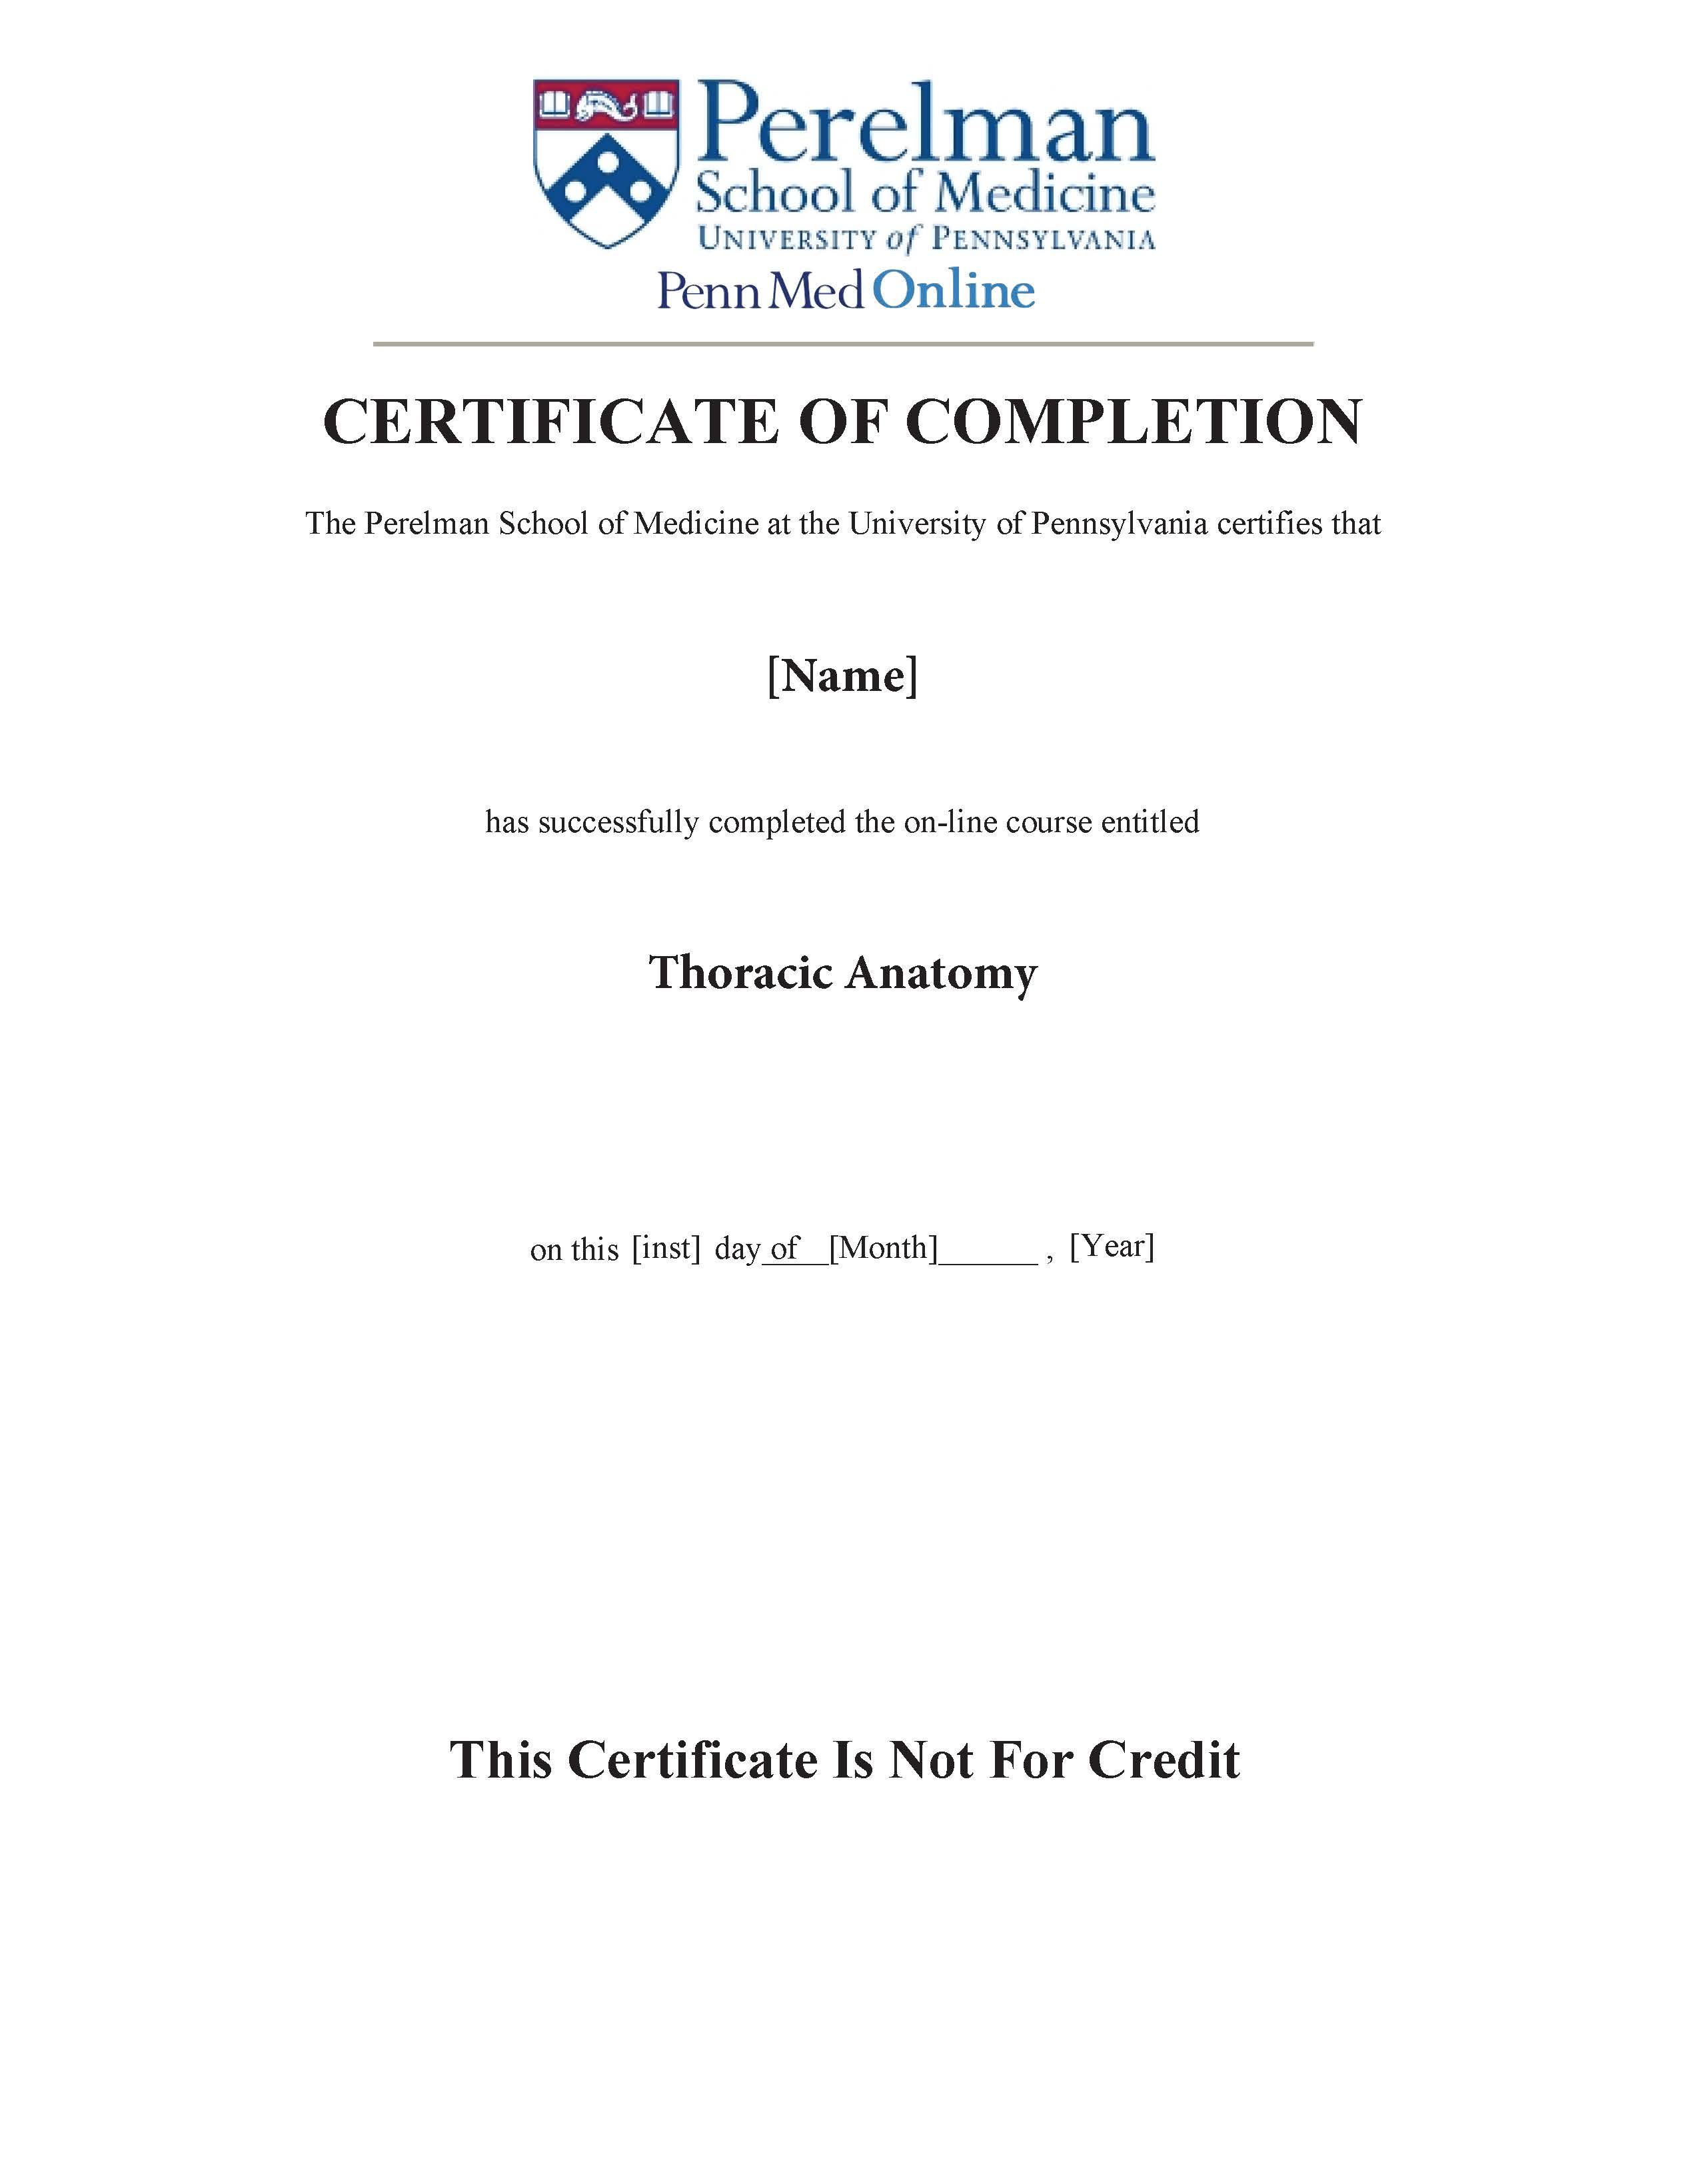 About The Pennmed Online Certificate